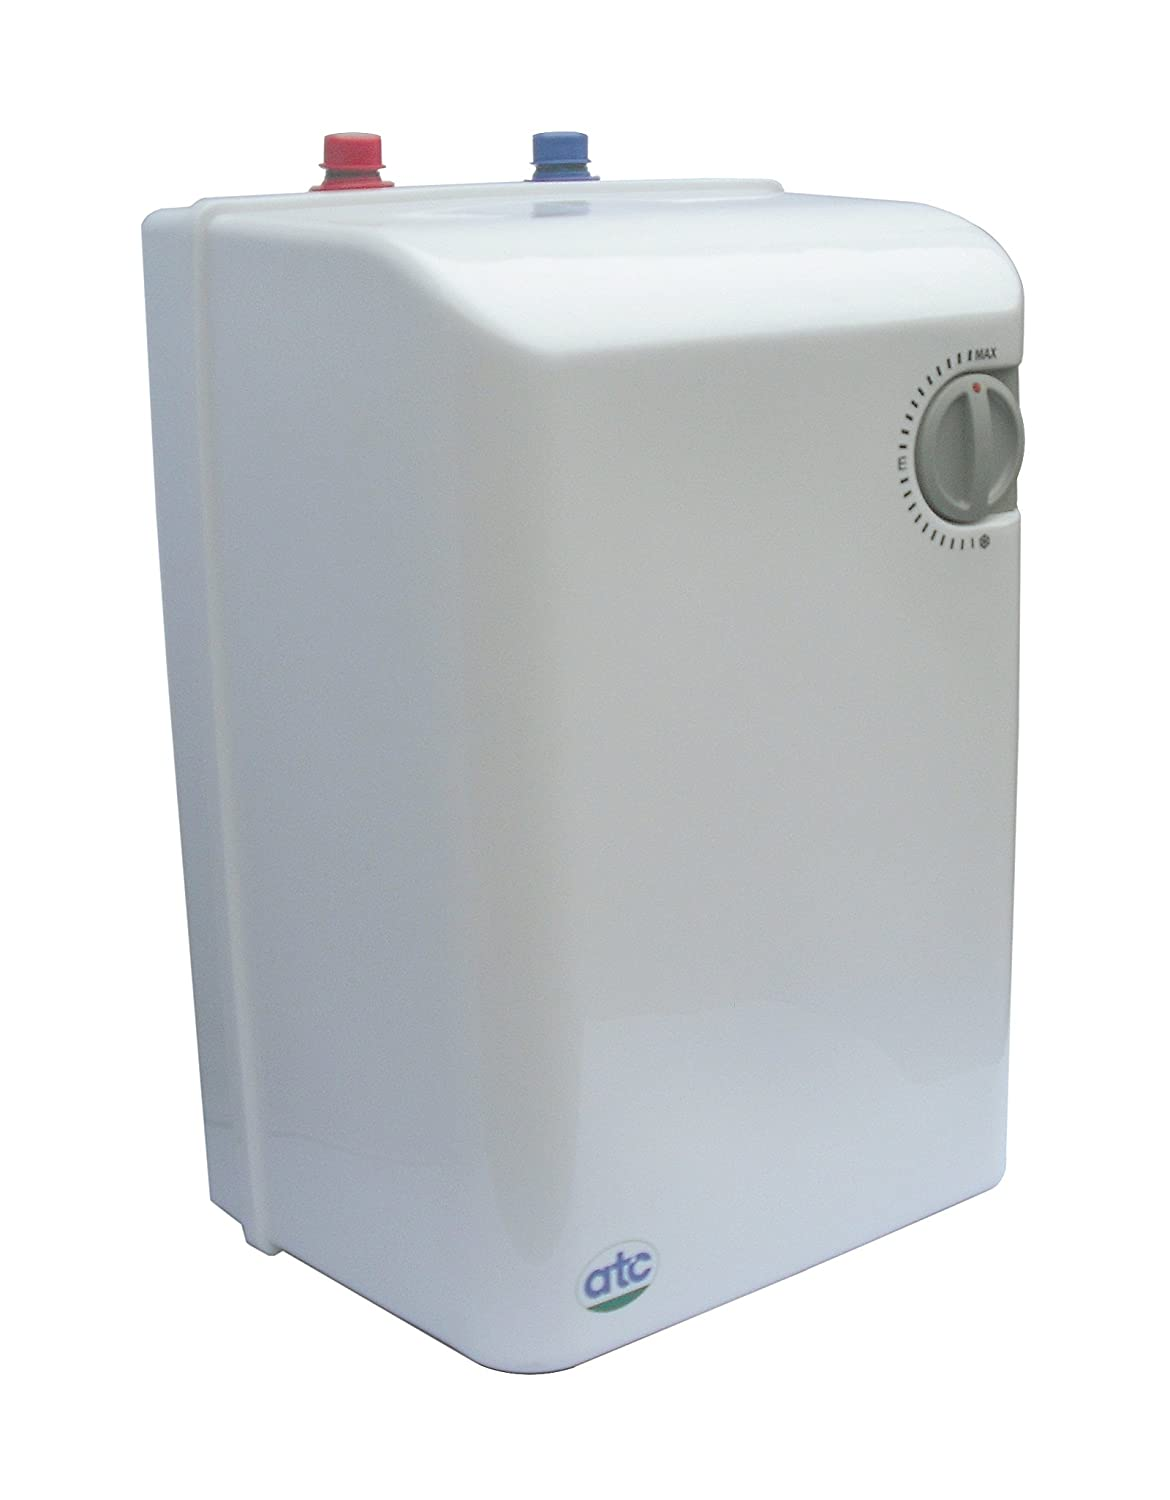 10L 2kW Under sink Water Heater by ATC - 3 sinks: Amazon.co.uk: DIY ...